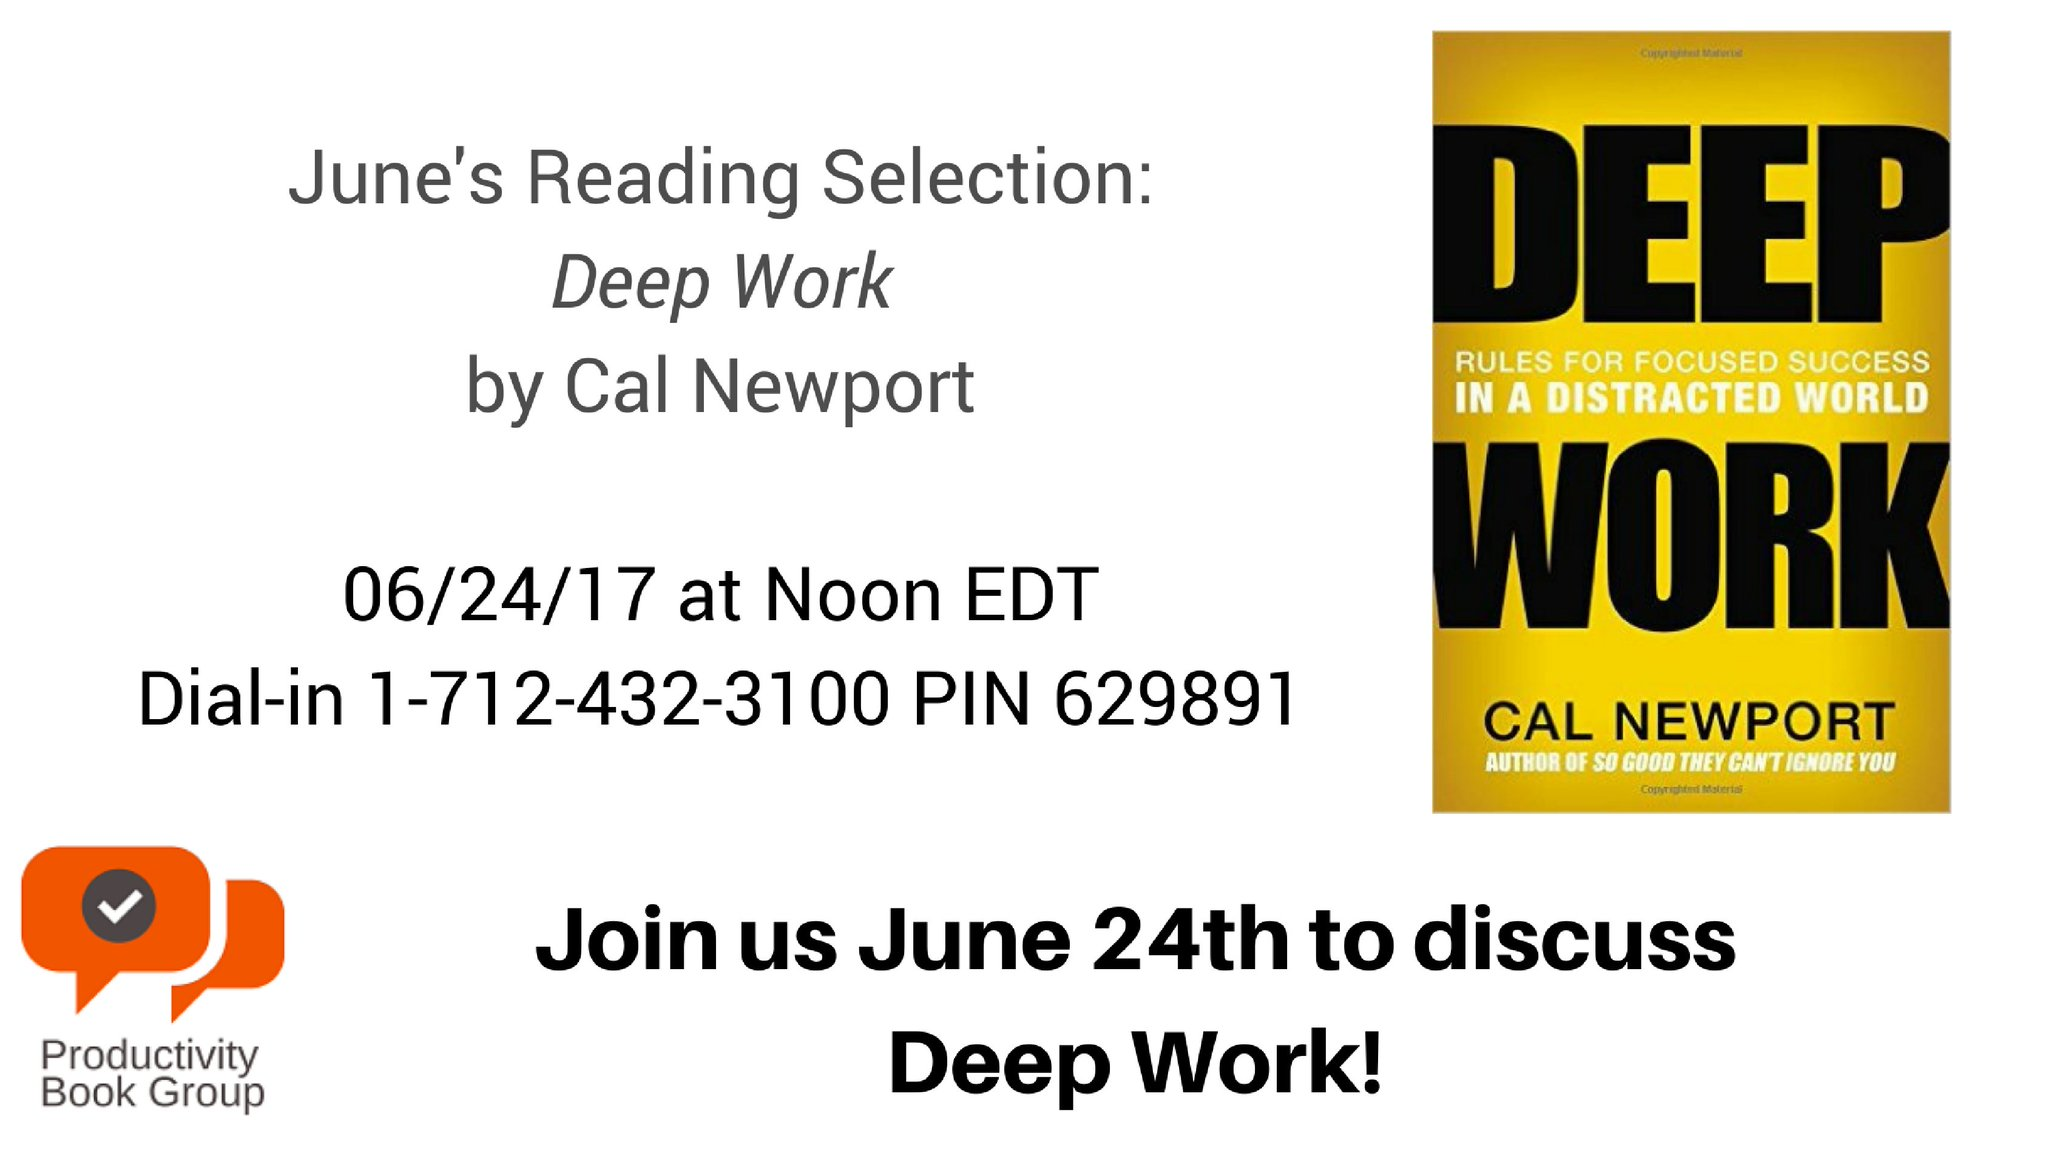 Join us for our next #Productivity Book Group live discussion! https://t.co/n14akGBB5E #prodchat https://t.co/XBQhPKIvy6